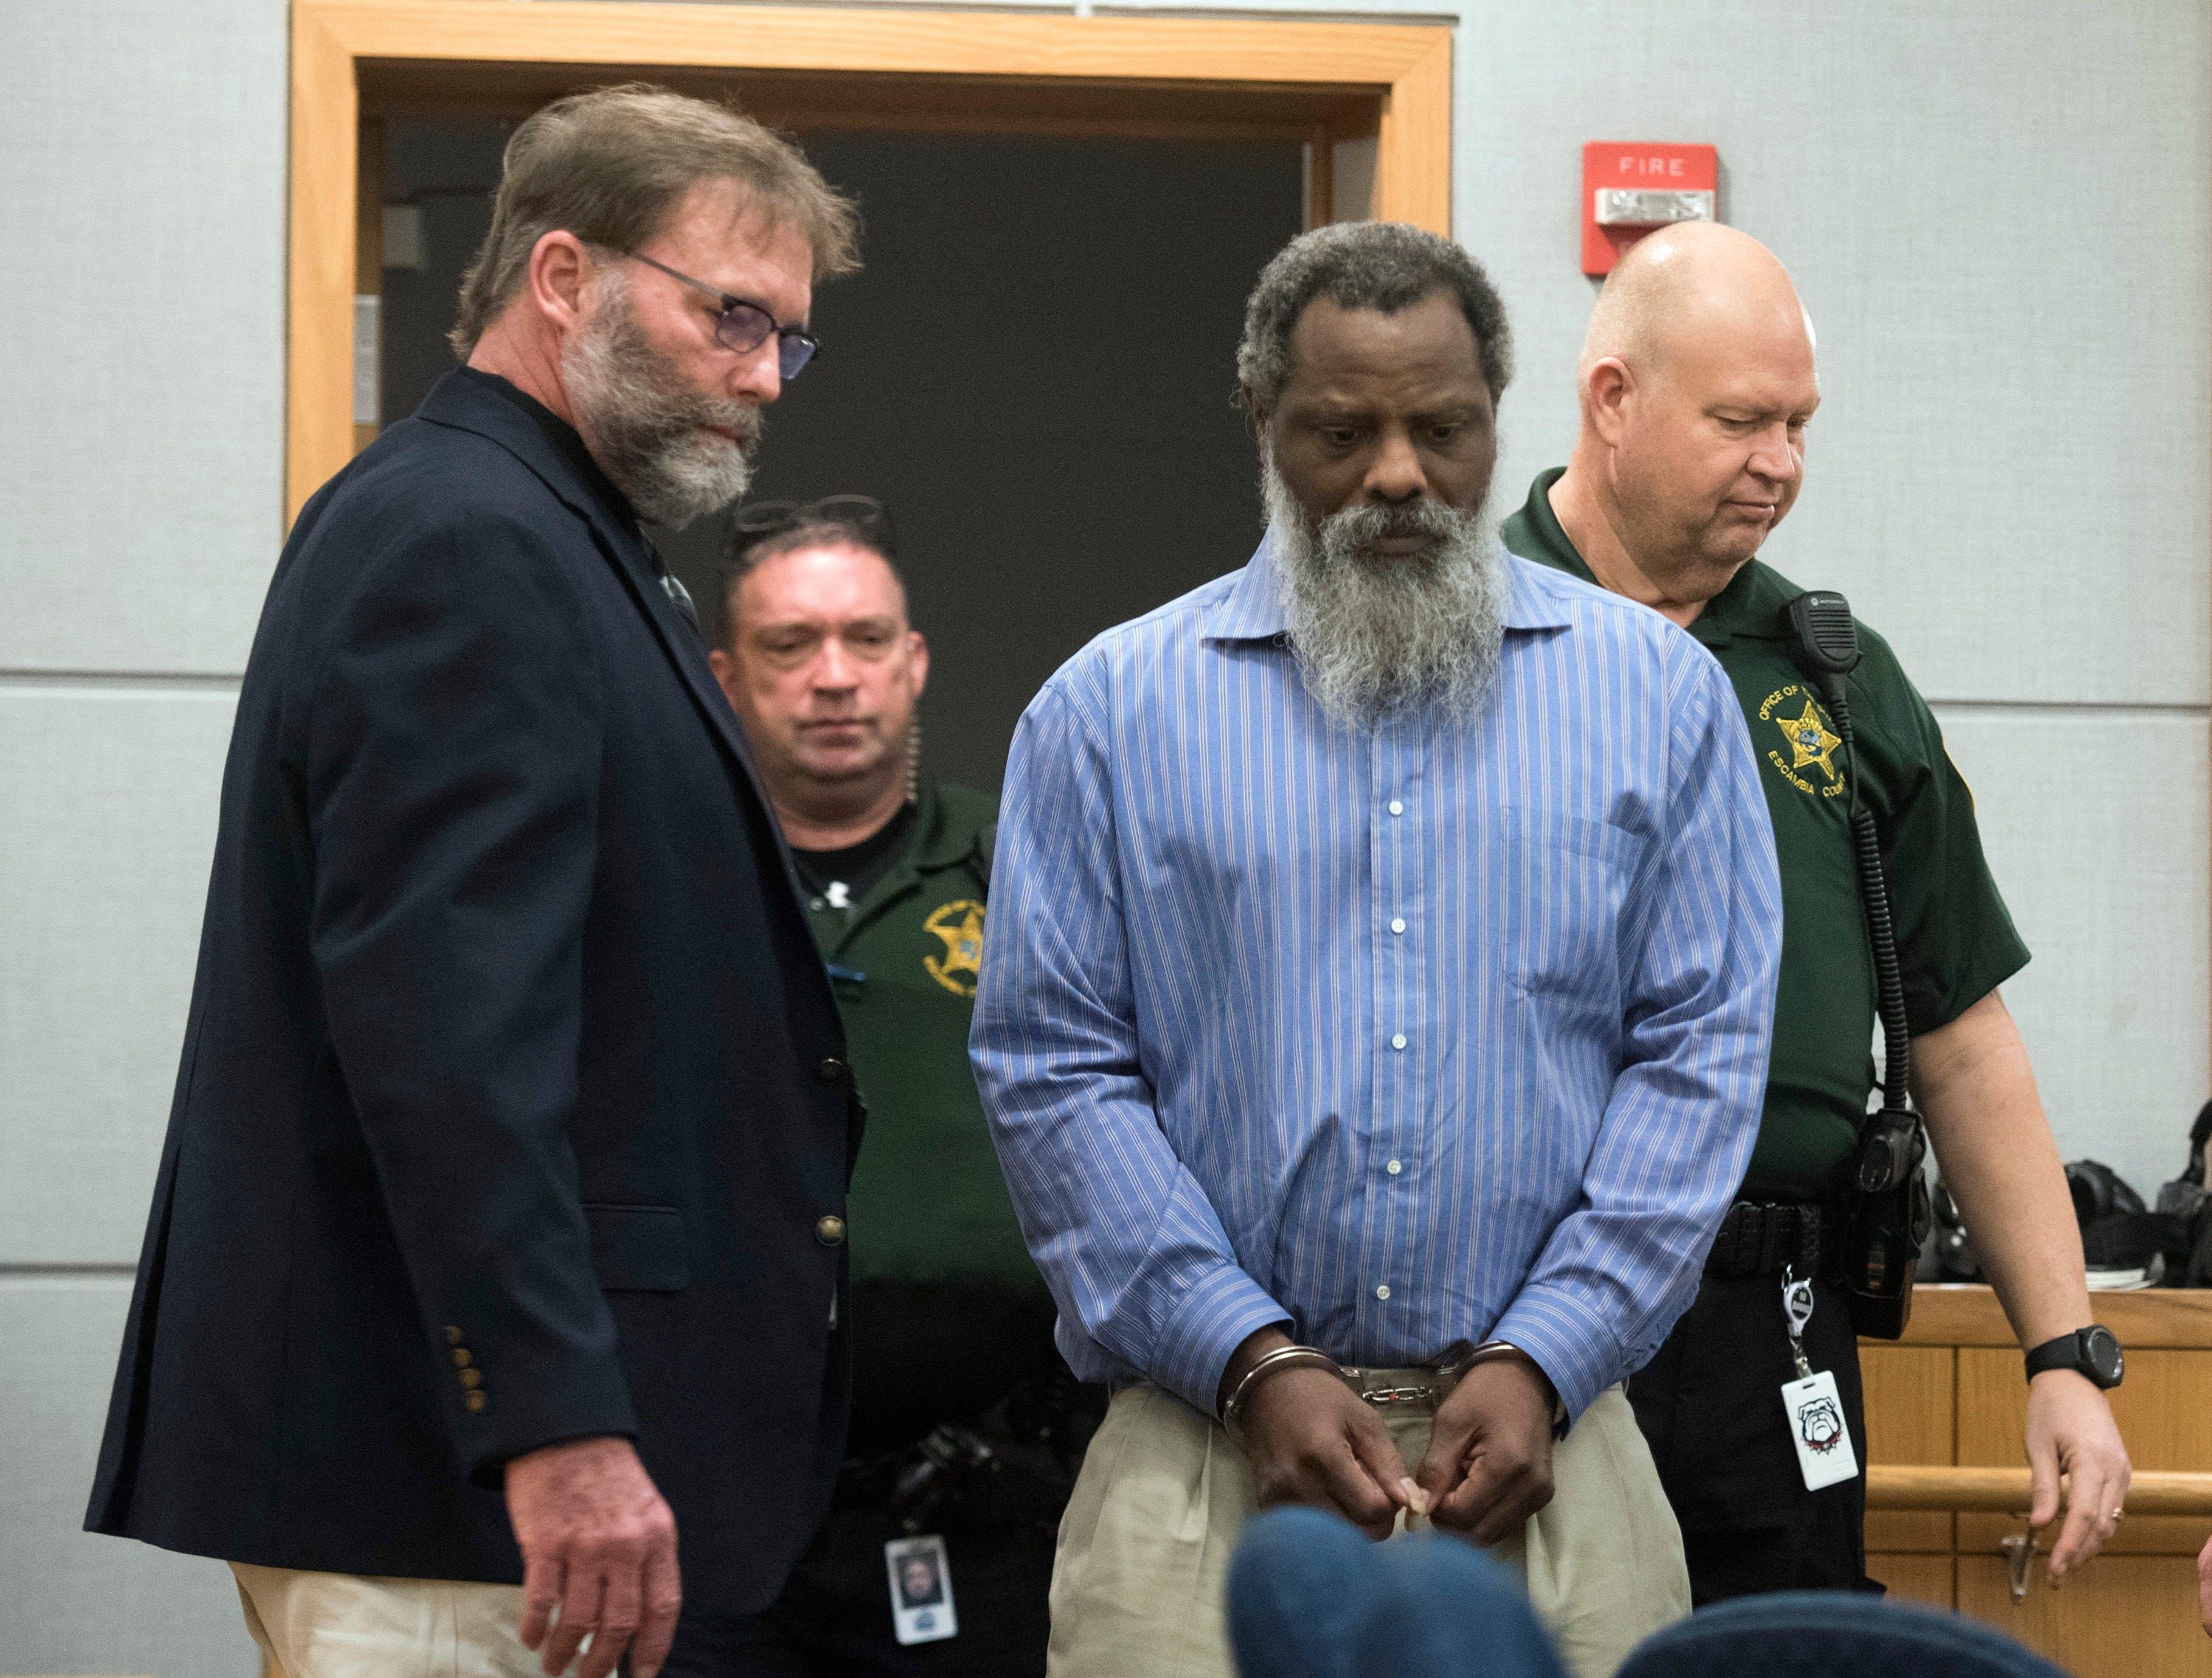 Patrick Miles Smith enters the courtroom of Circuit Judge Joel Boles on Tuesday, Feb. 5, 2019,  to stand trial for the death of his former girlfriend, Mary Ellen Williams